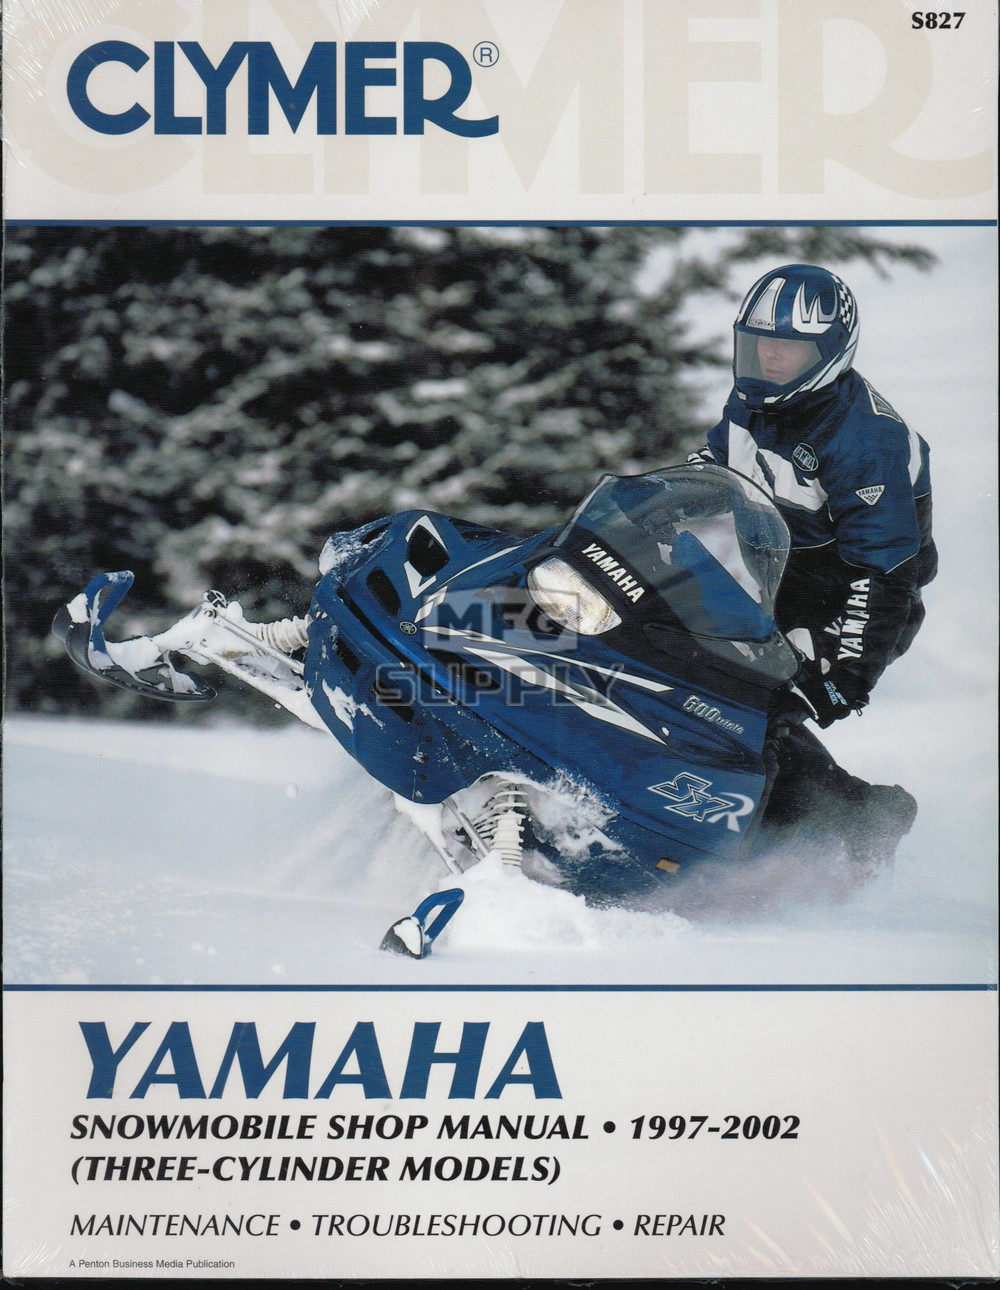 97-02 Yamaha Snowmobile Shop Repair, Maintenance & Service Manual